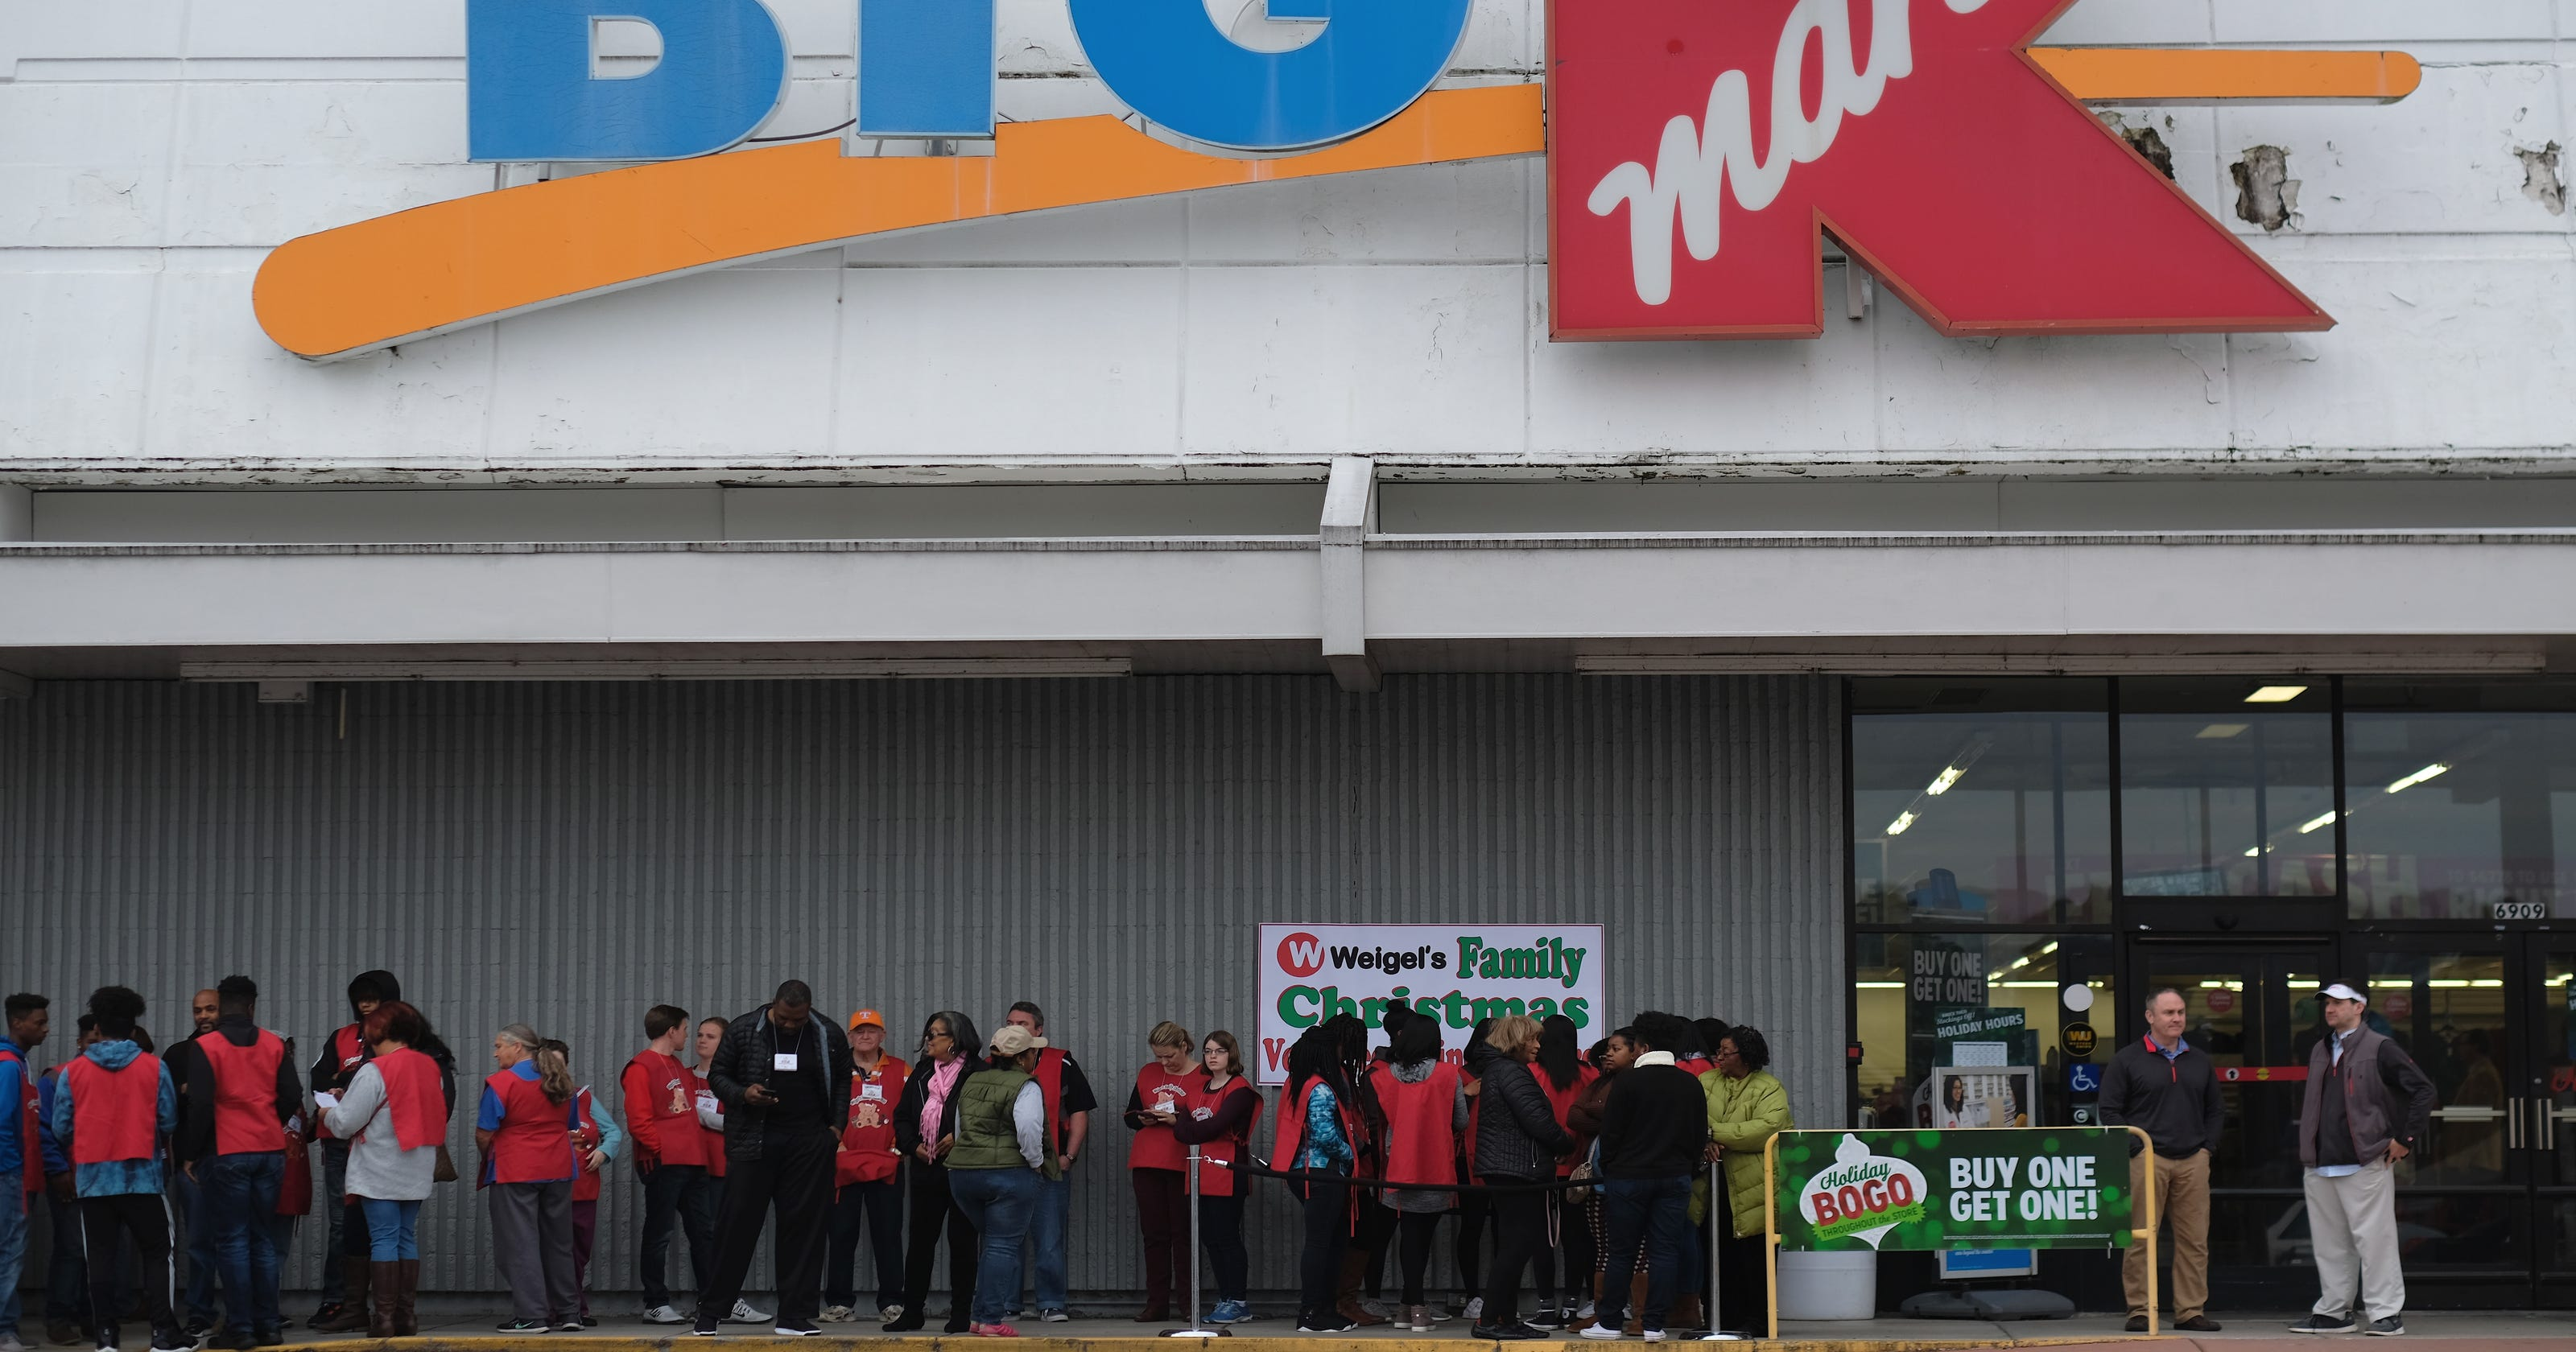 Two Tennessee Kmart stores included in latest round of closures